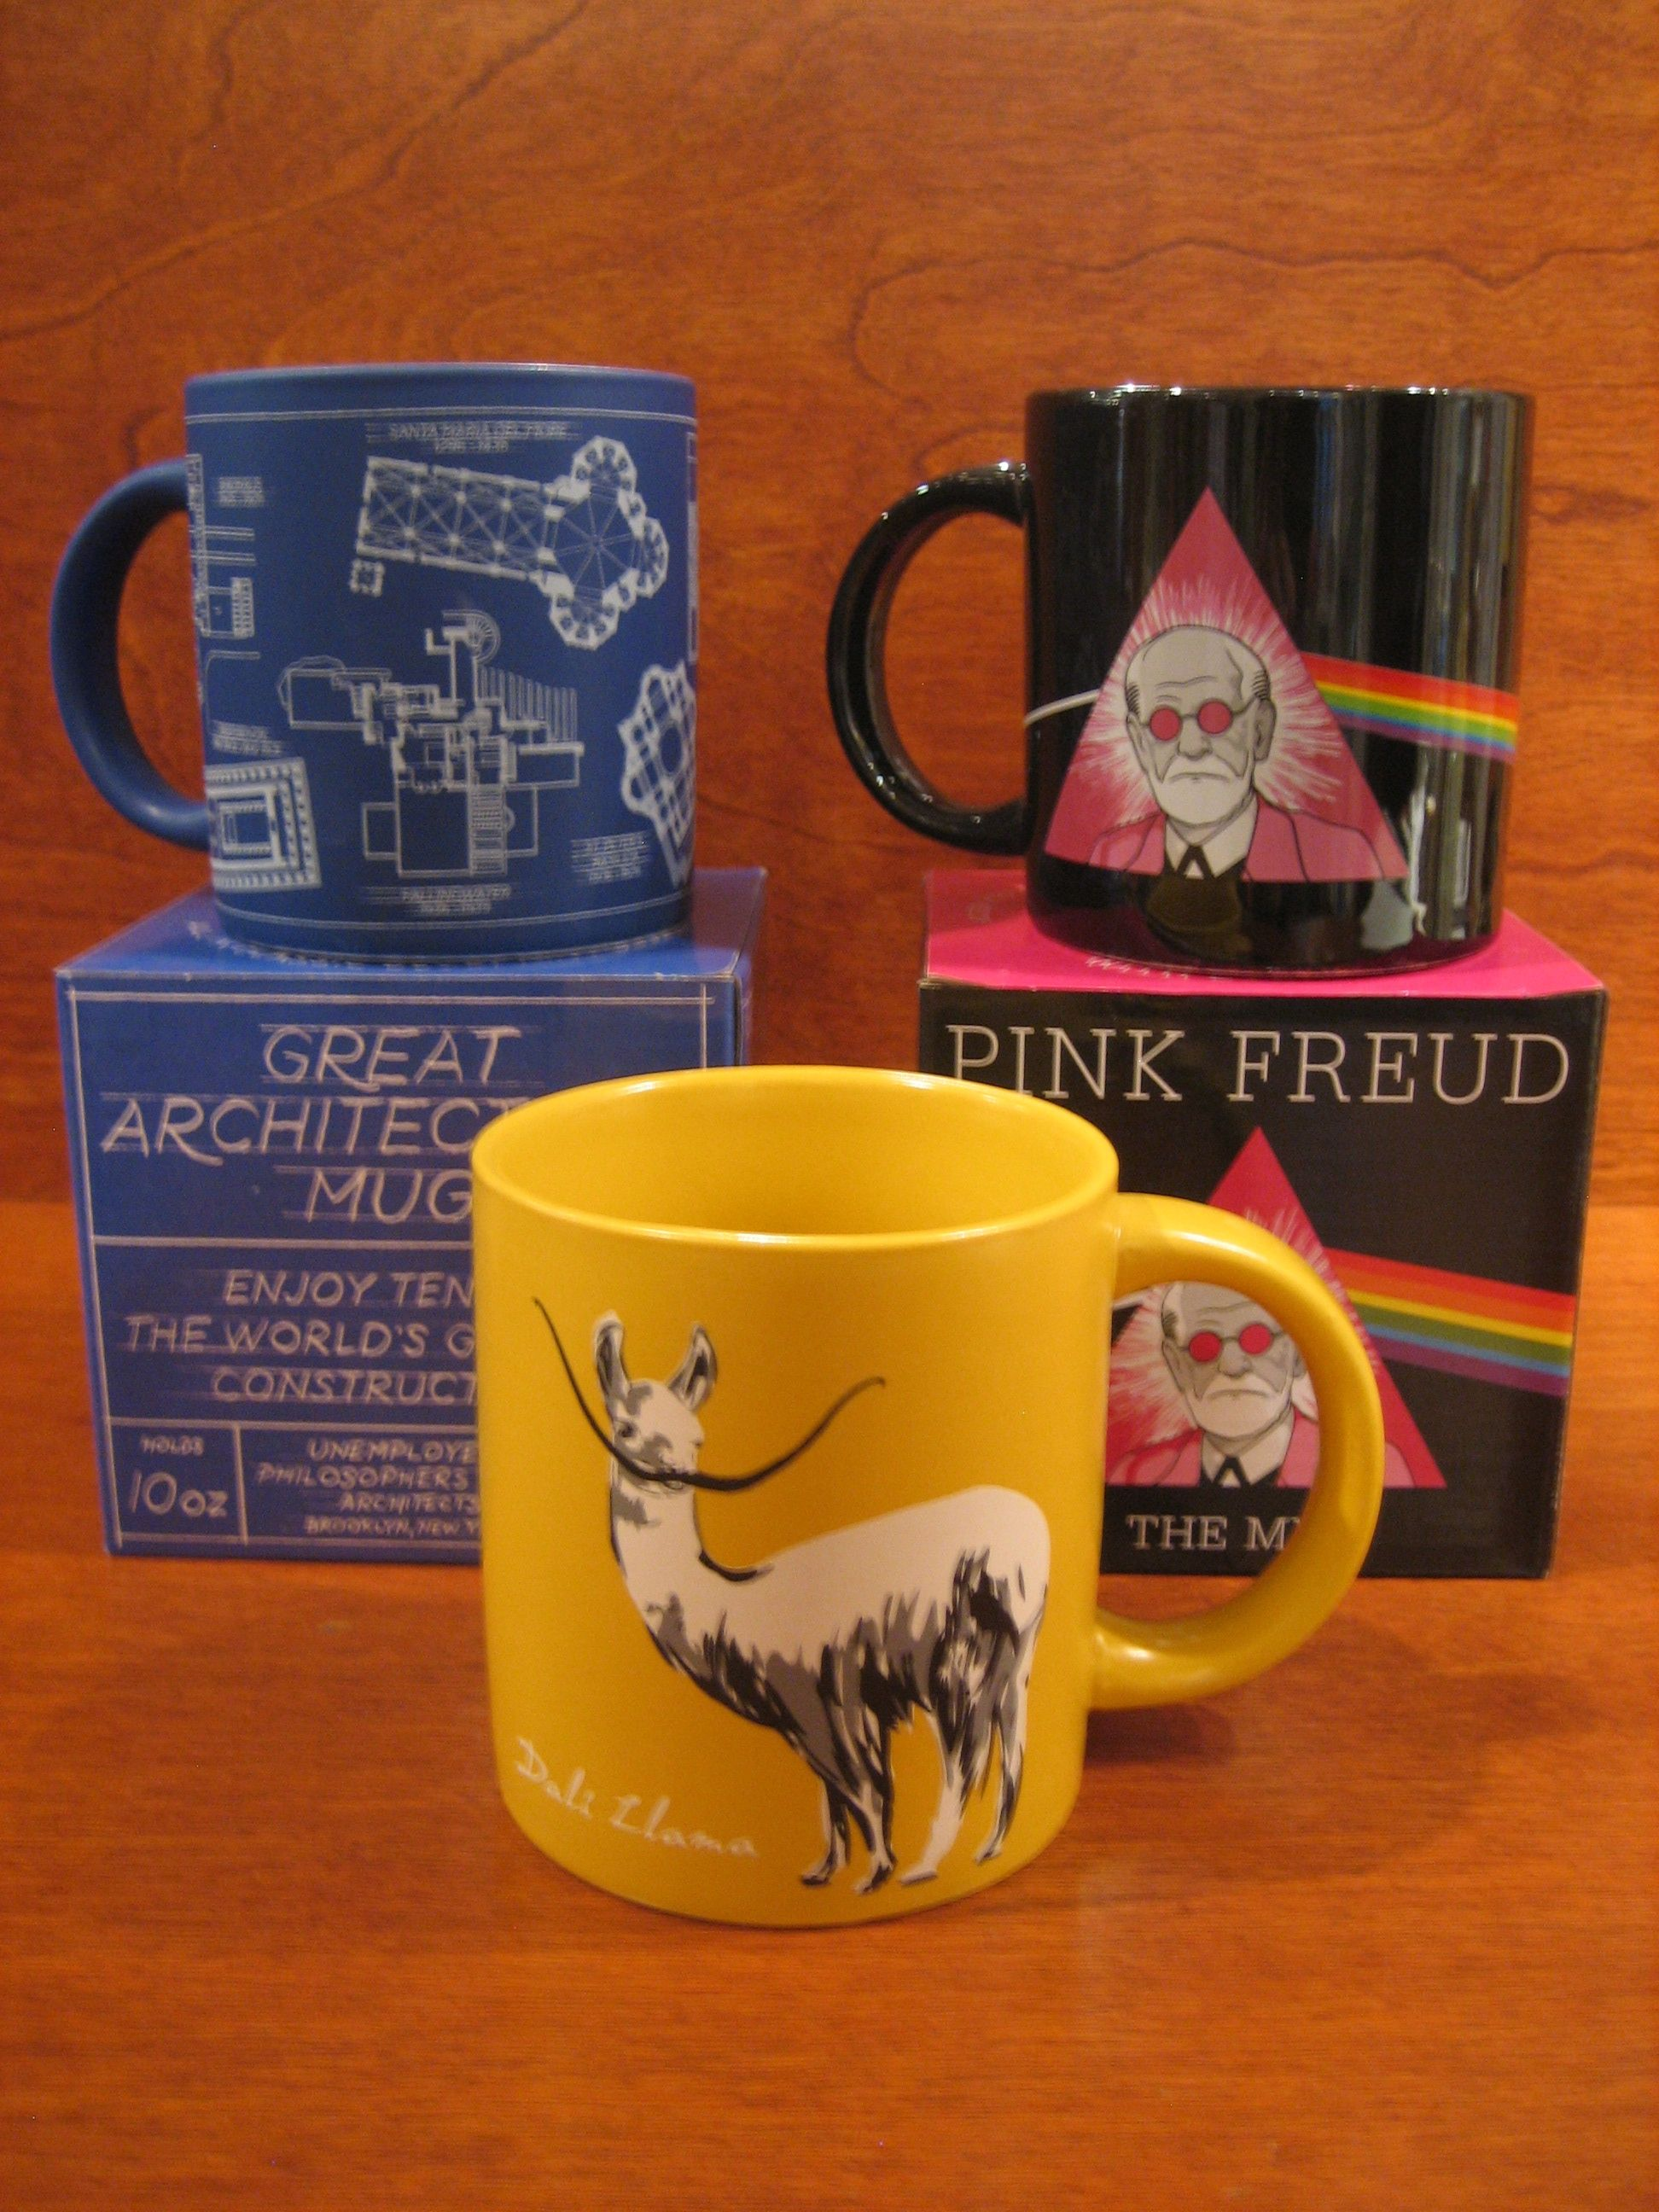 These Unemployed Philosophers Guild mugs are a riot! Get them at our #chestnuthill location only. #mugs #smart #funny #architecture #salvadordali #freud #pinkfloyd #gift #smart #clever #elq1963 #elquetzal #shoplocal